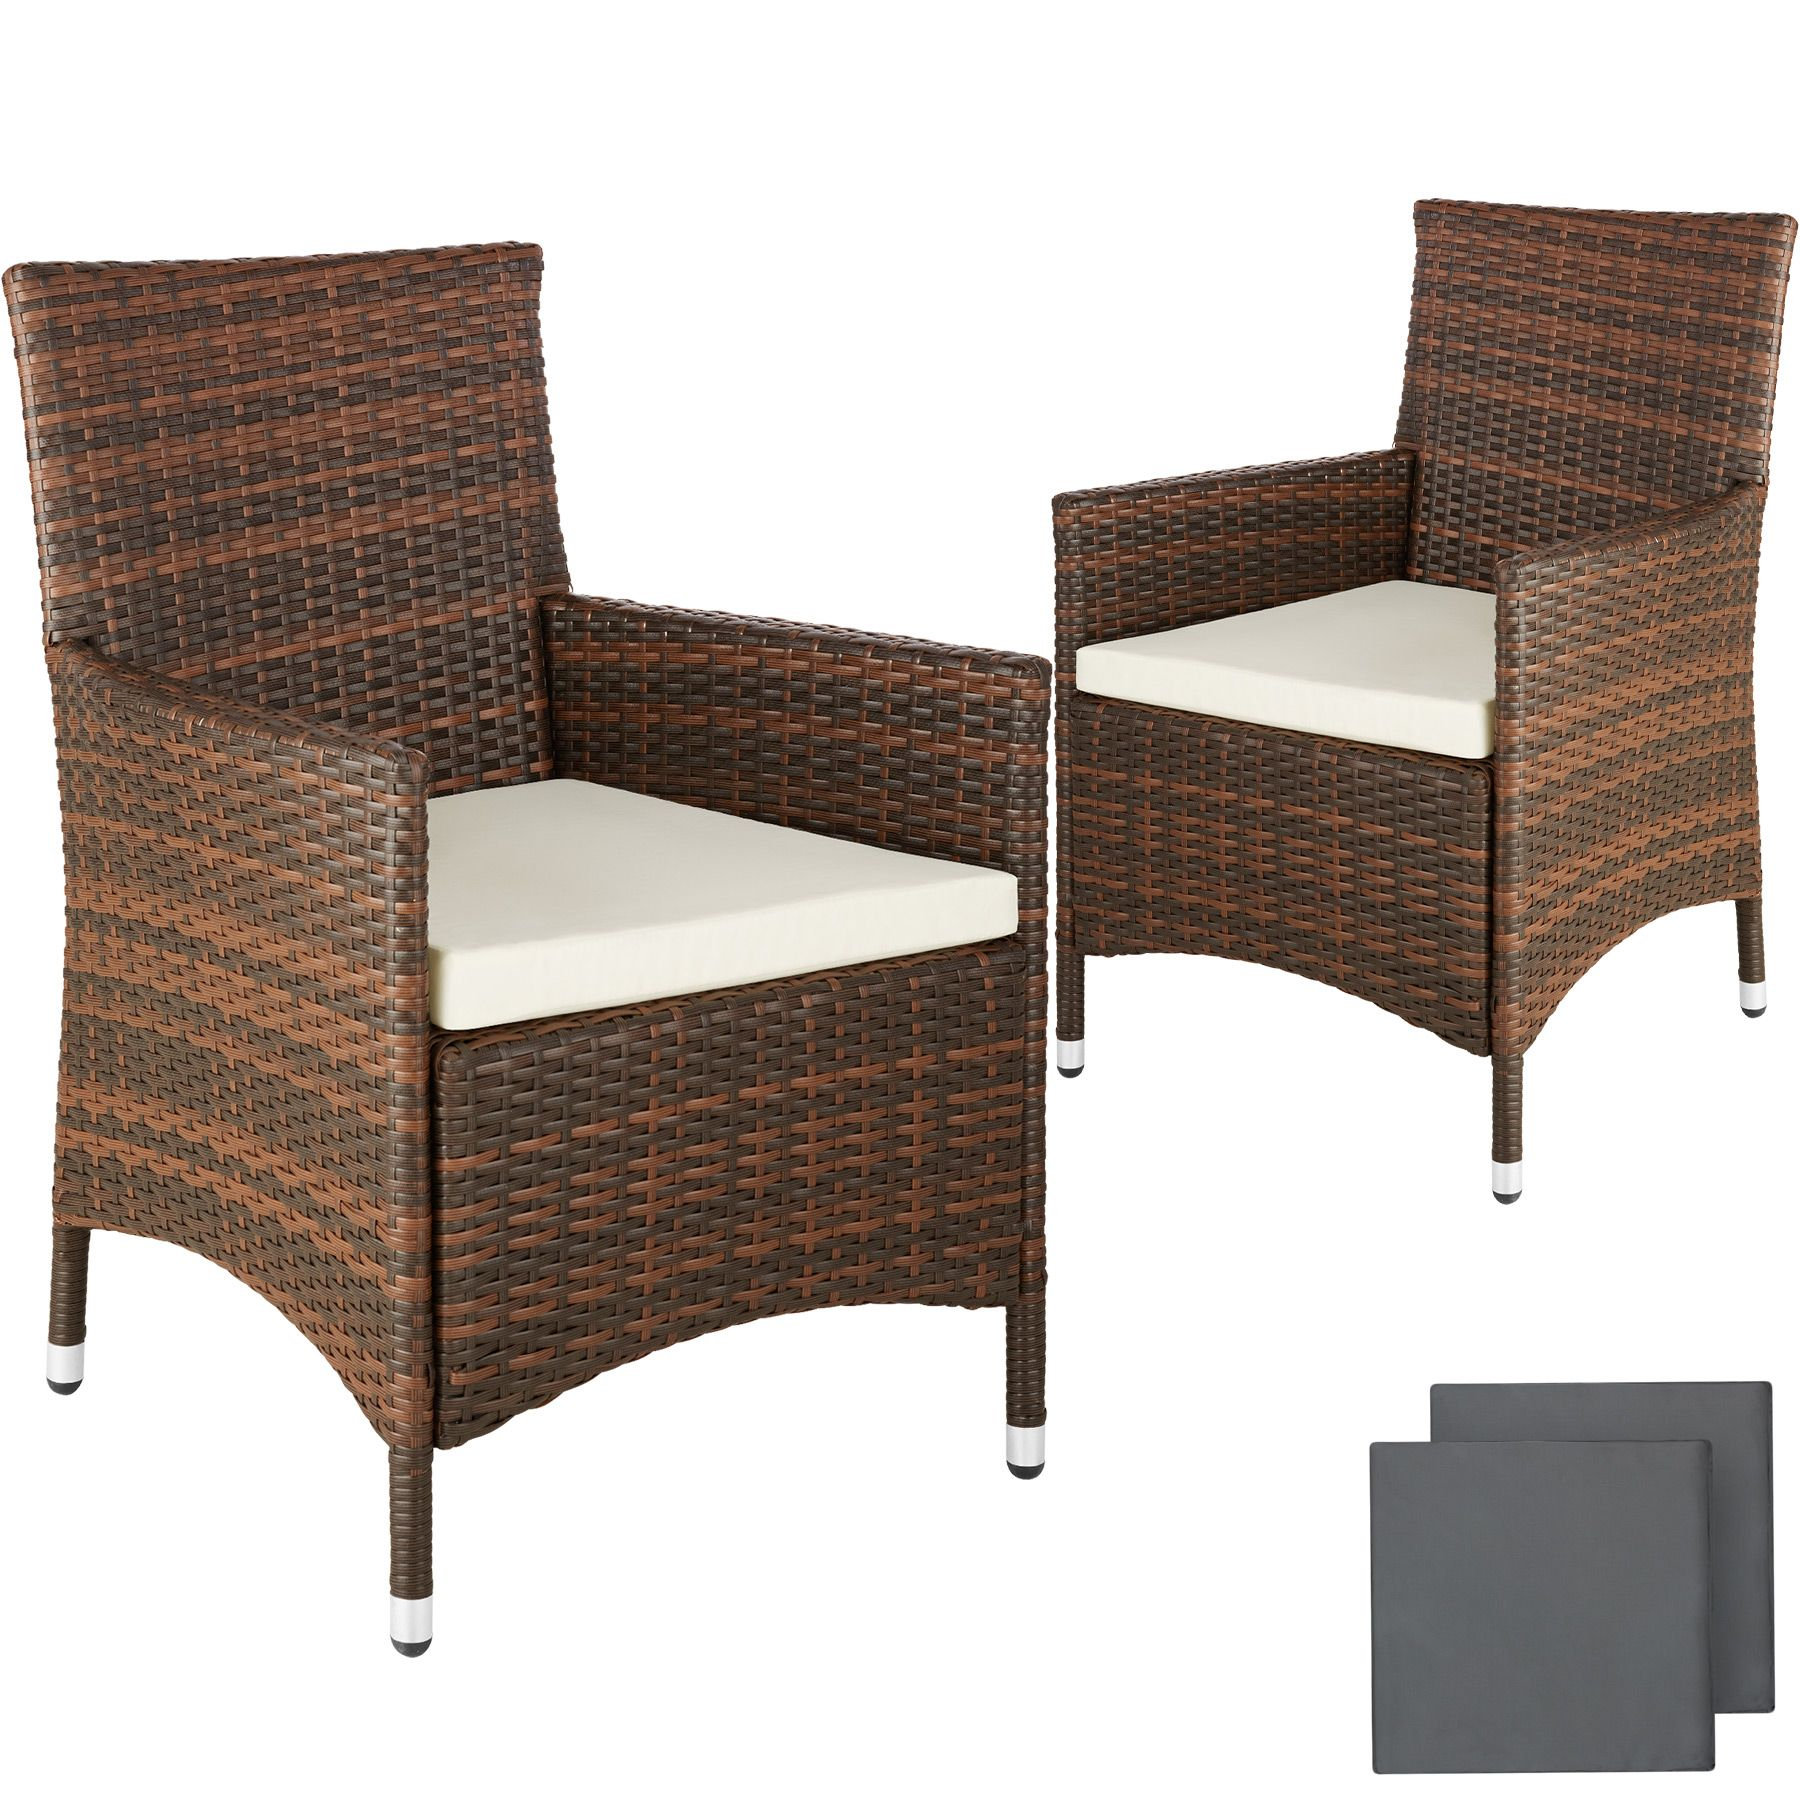 Polyrattan Bank Details About 2 X Poly Rattan Garden Chairs Alu Wicker Outdoor Armchair Set Cushions New